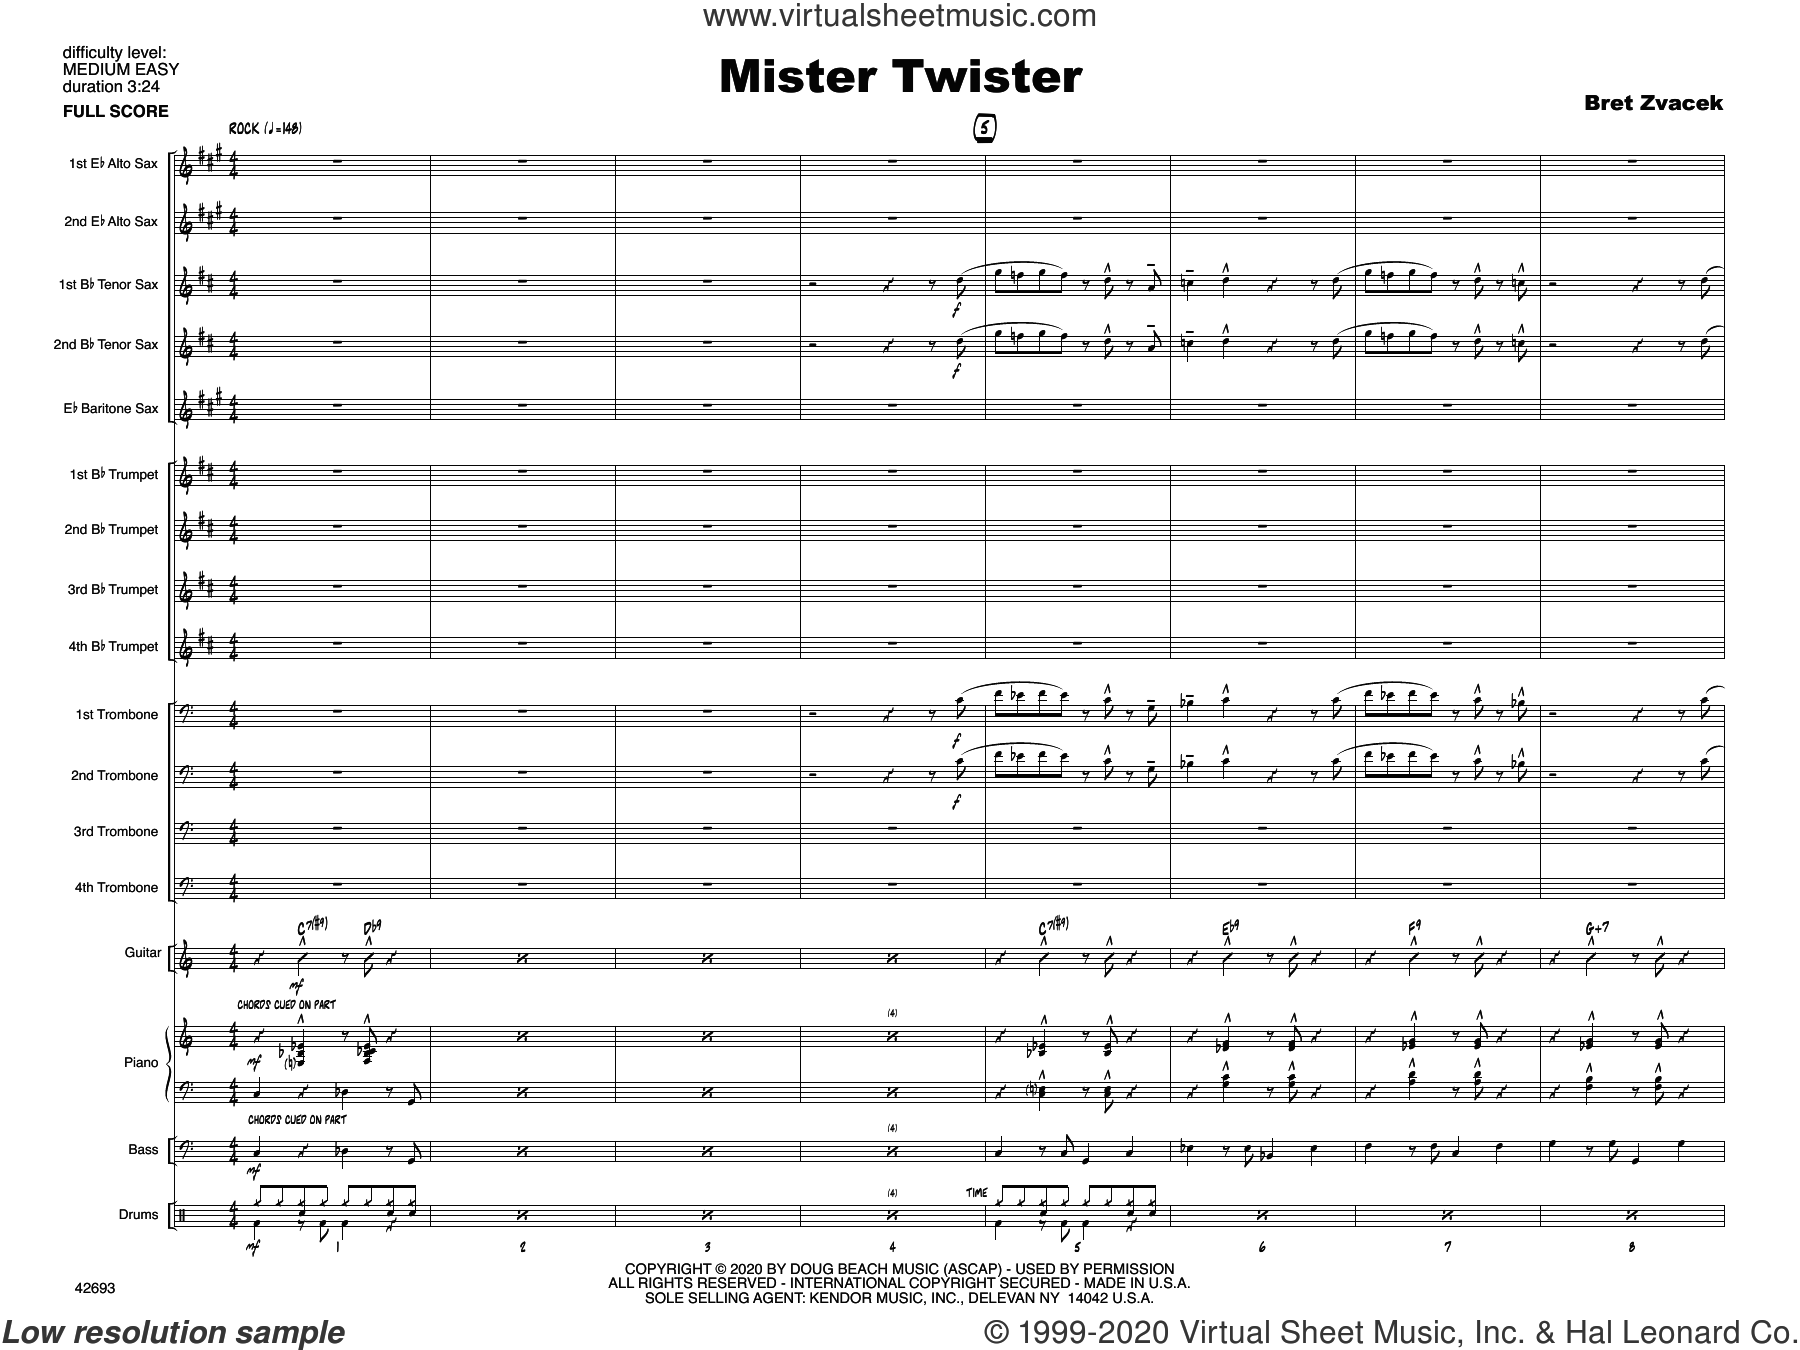 Mister Twister (COMPLETE) sheet music for jazz band by Bret Zvacek, intermediate skill level